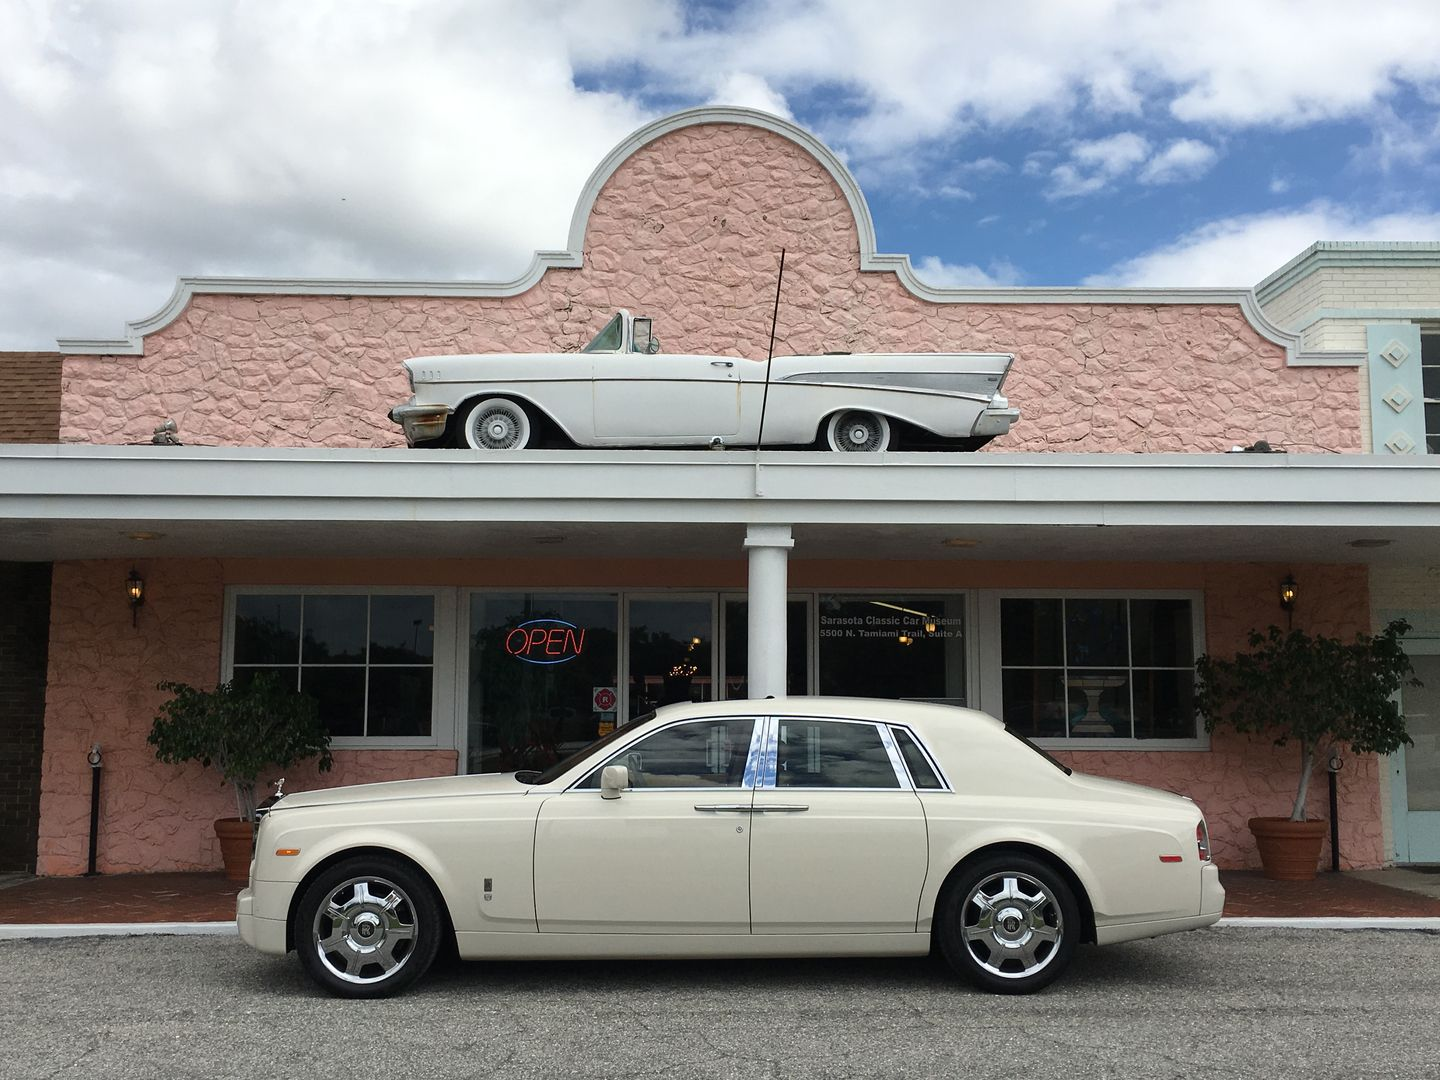 Arrive In A Rolls Royce Phantom On Your Wedding Day We Have The Finest Luxury Rolls Royce Dream Cars Limousine Rental